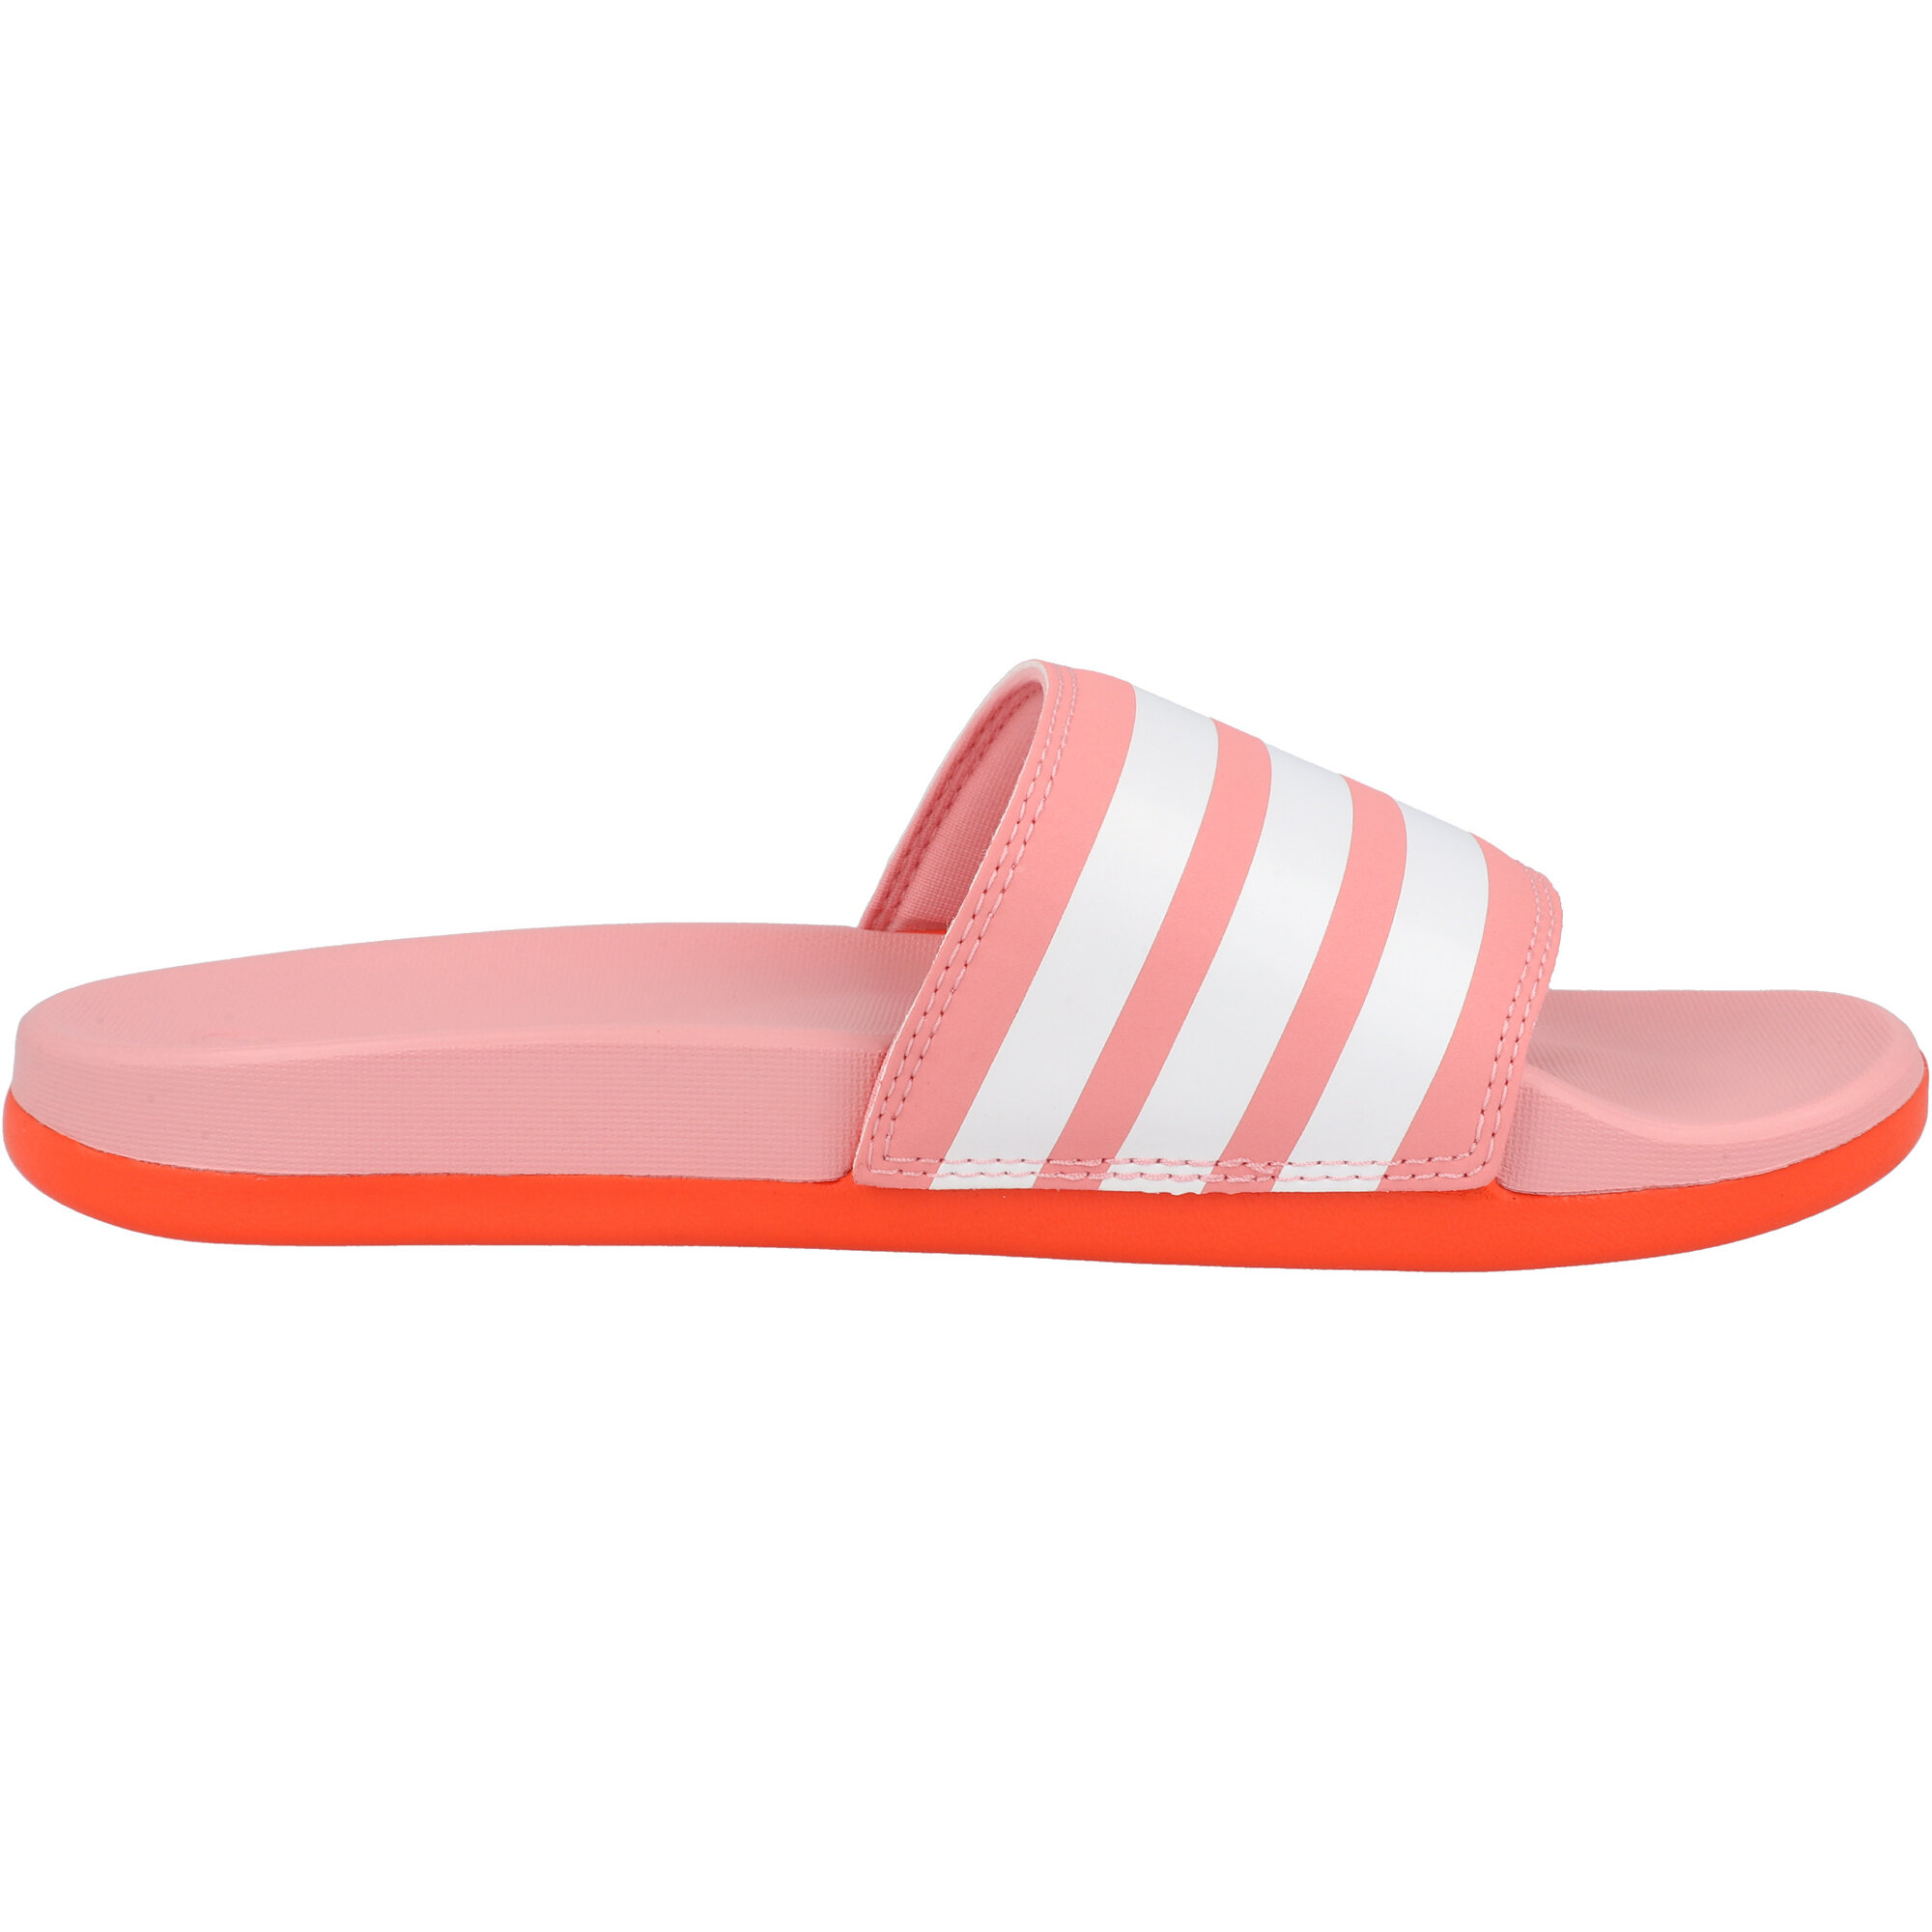 adidas adilette Comfort Pink/Red Synthetic